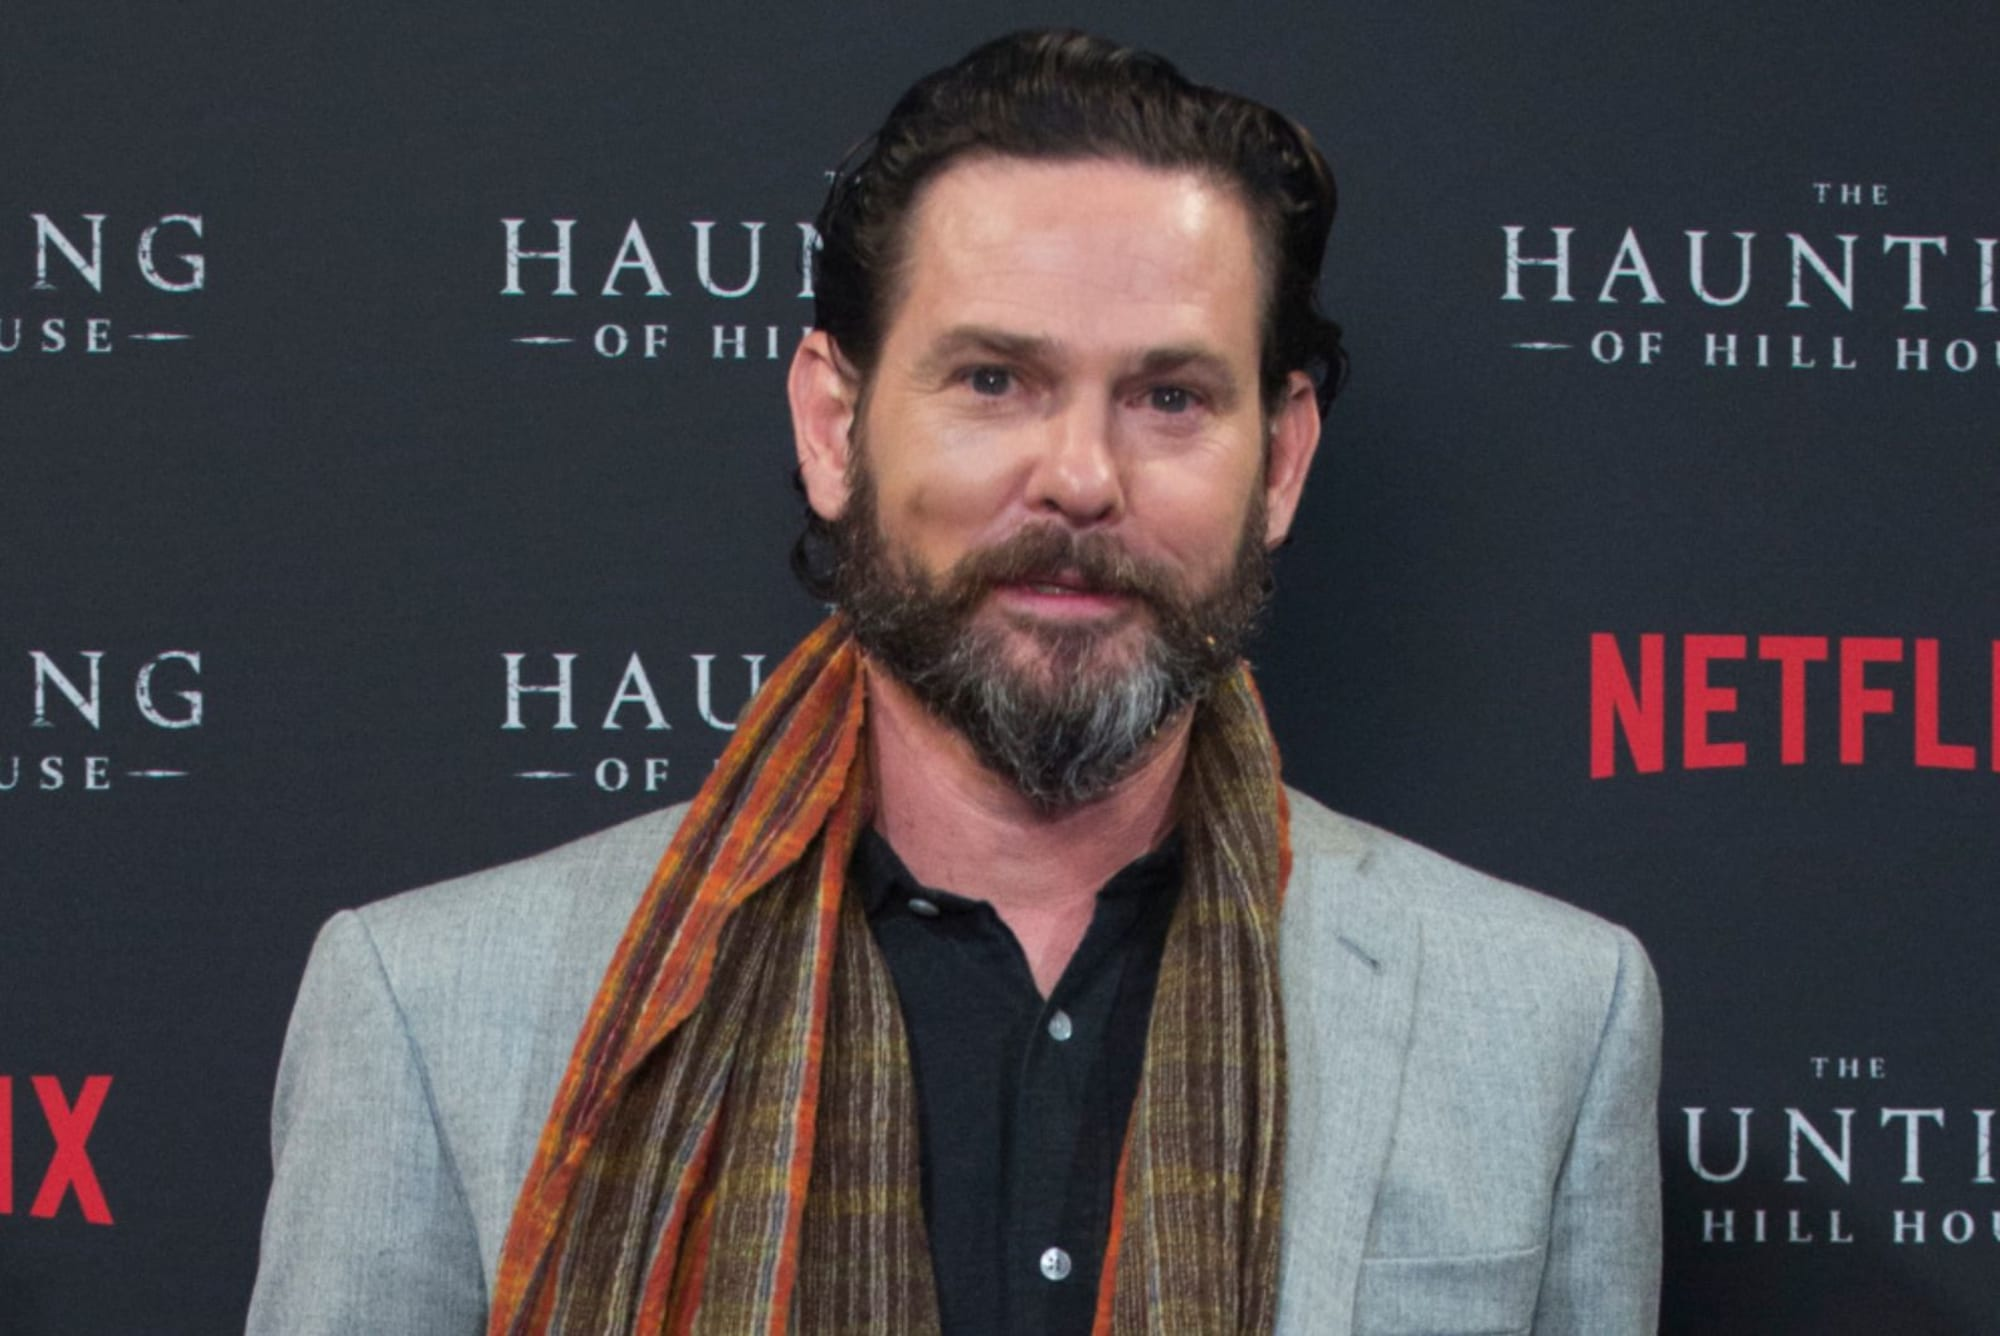 The Haunting Of Hill House Star Henry Thomas Returns For Season 2